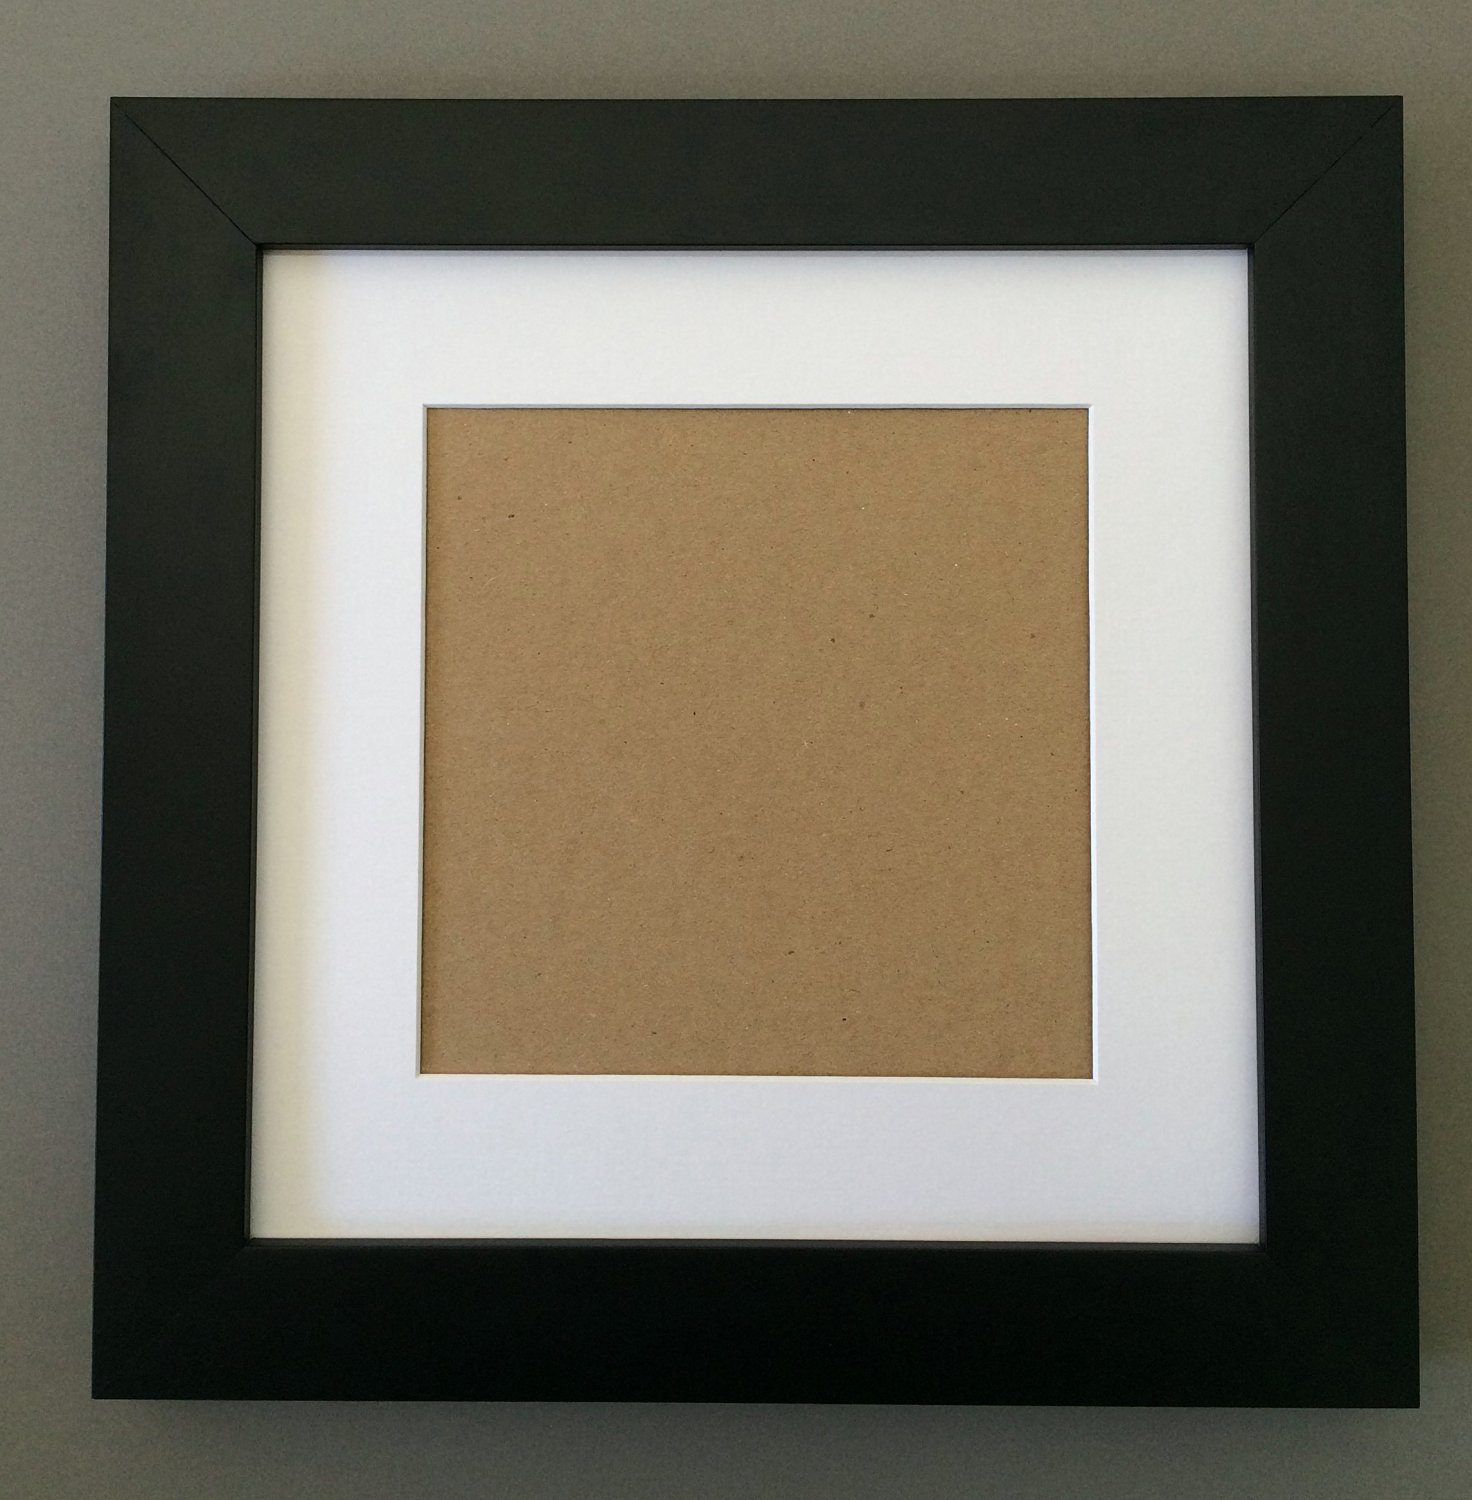 Cheap 12 X 12 White Frame, find 12 X 12 White Frame deals on line at ...